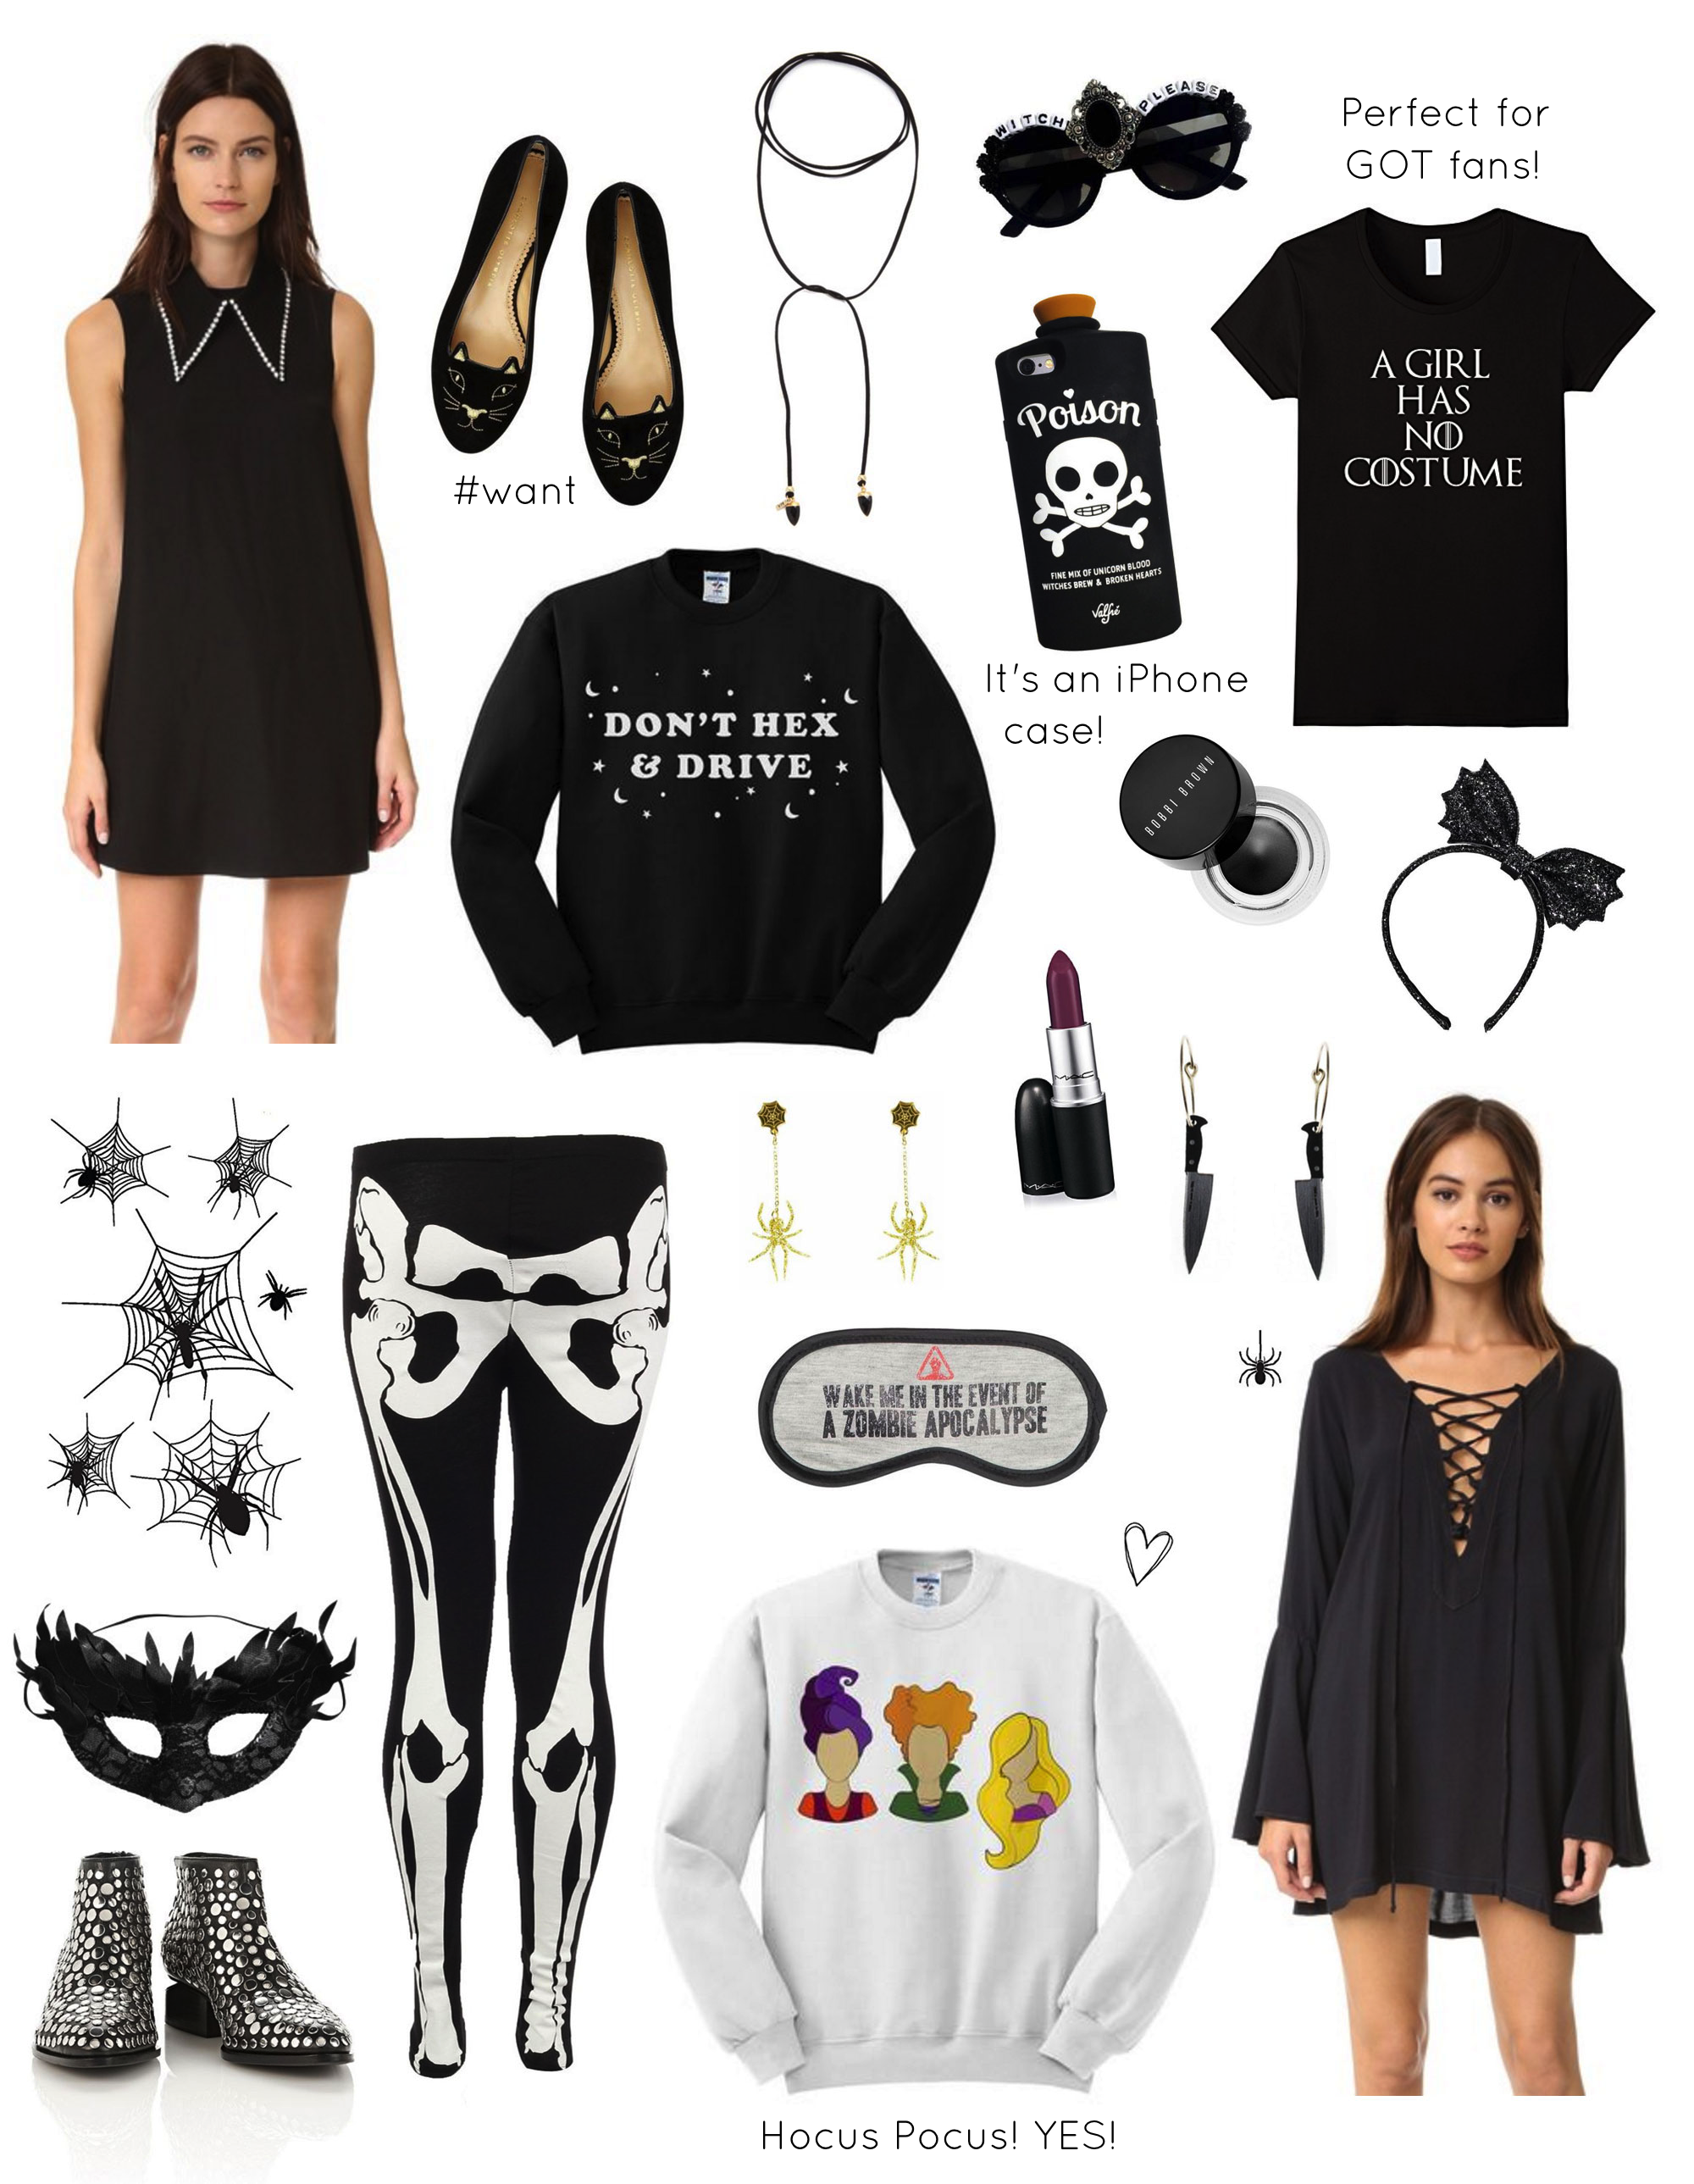 How to Look Cool on Halloween Without Really